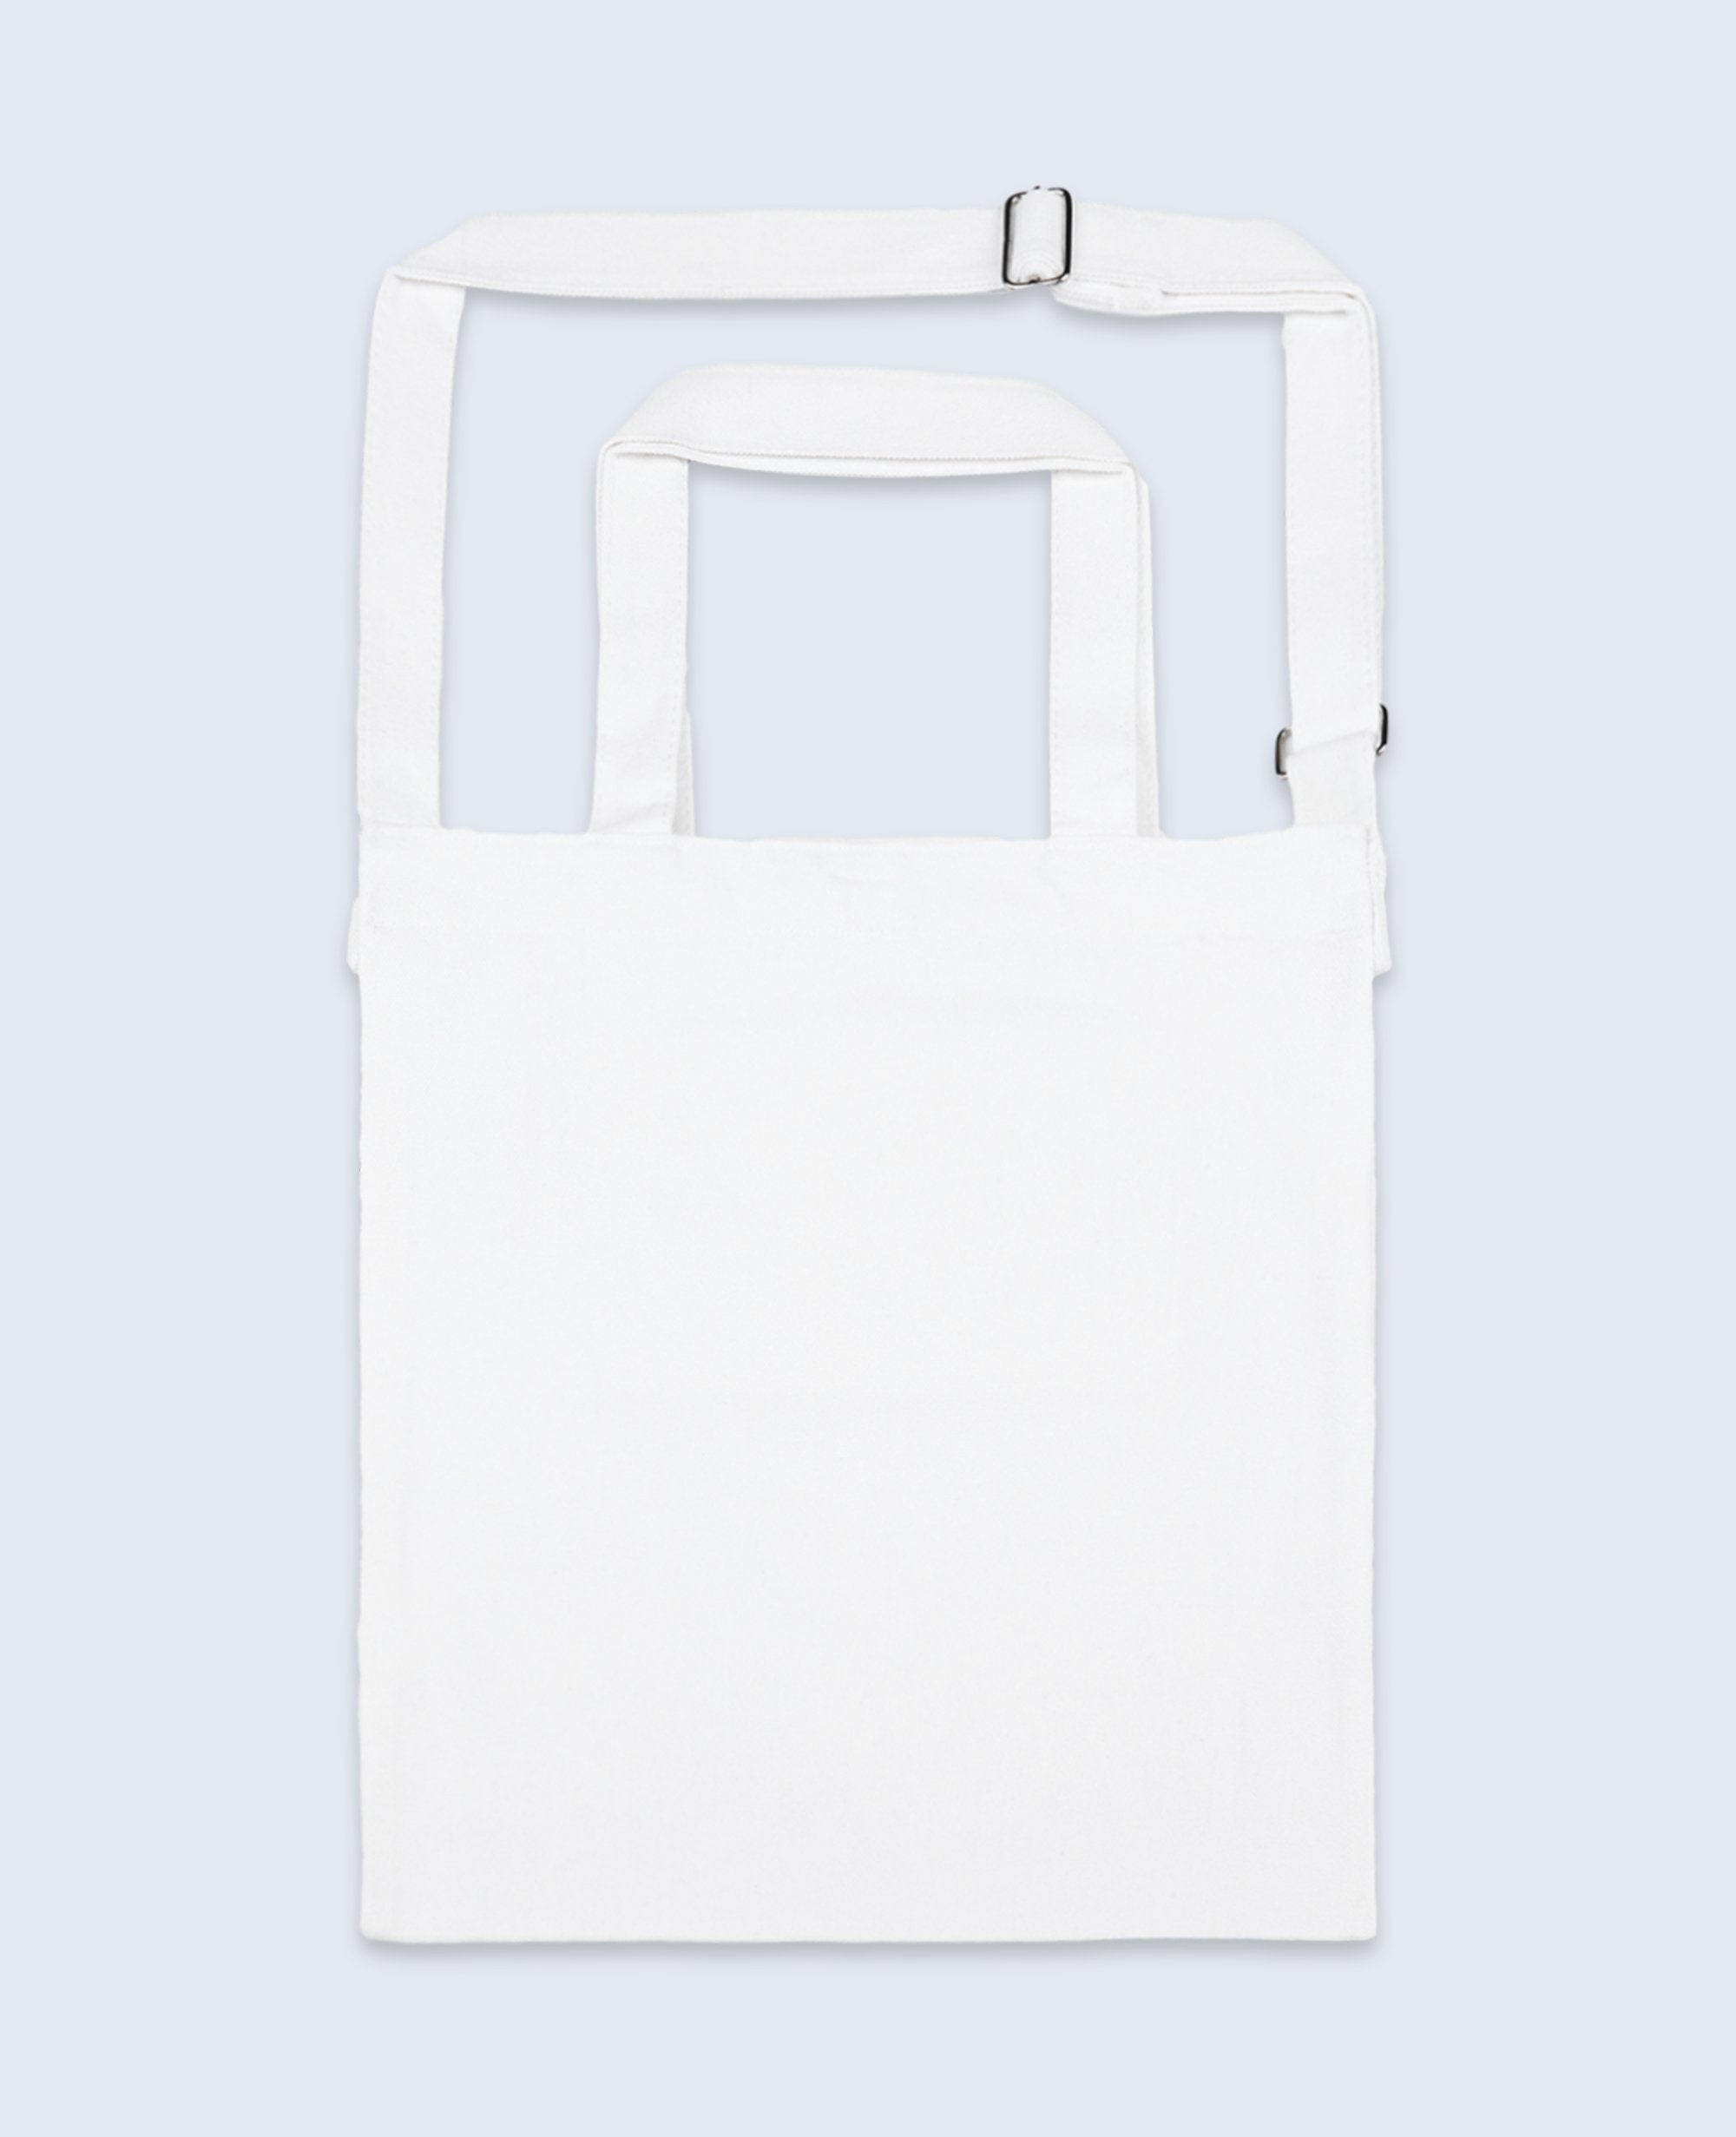 One shoulder Tote bag in White - Tote bags - BRANMA - BRANMA